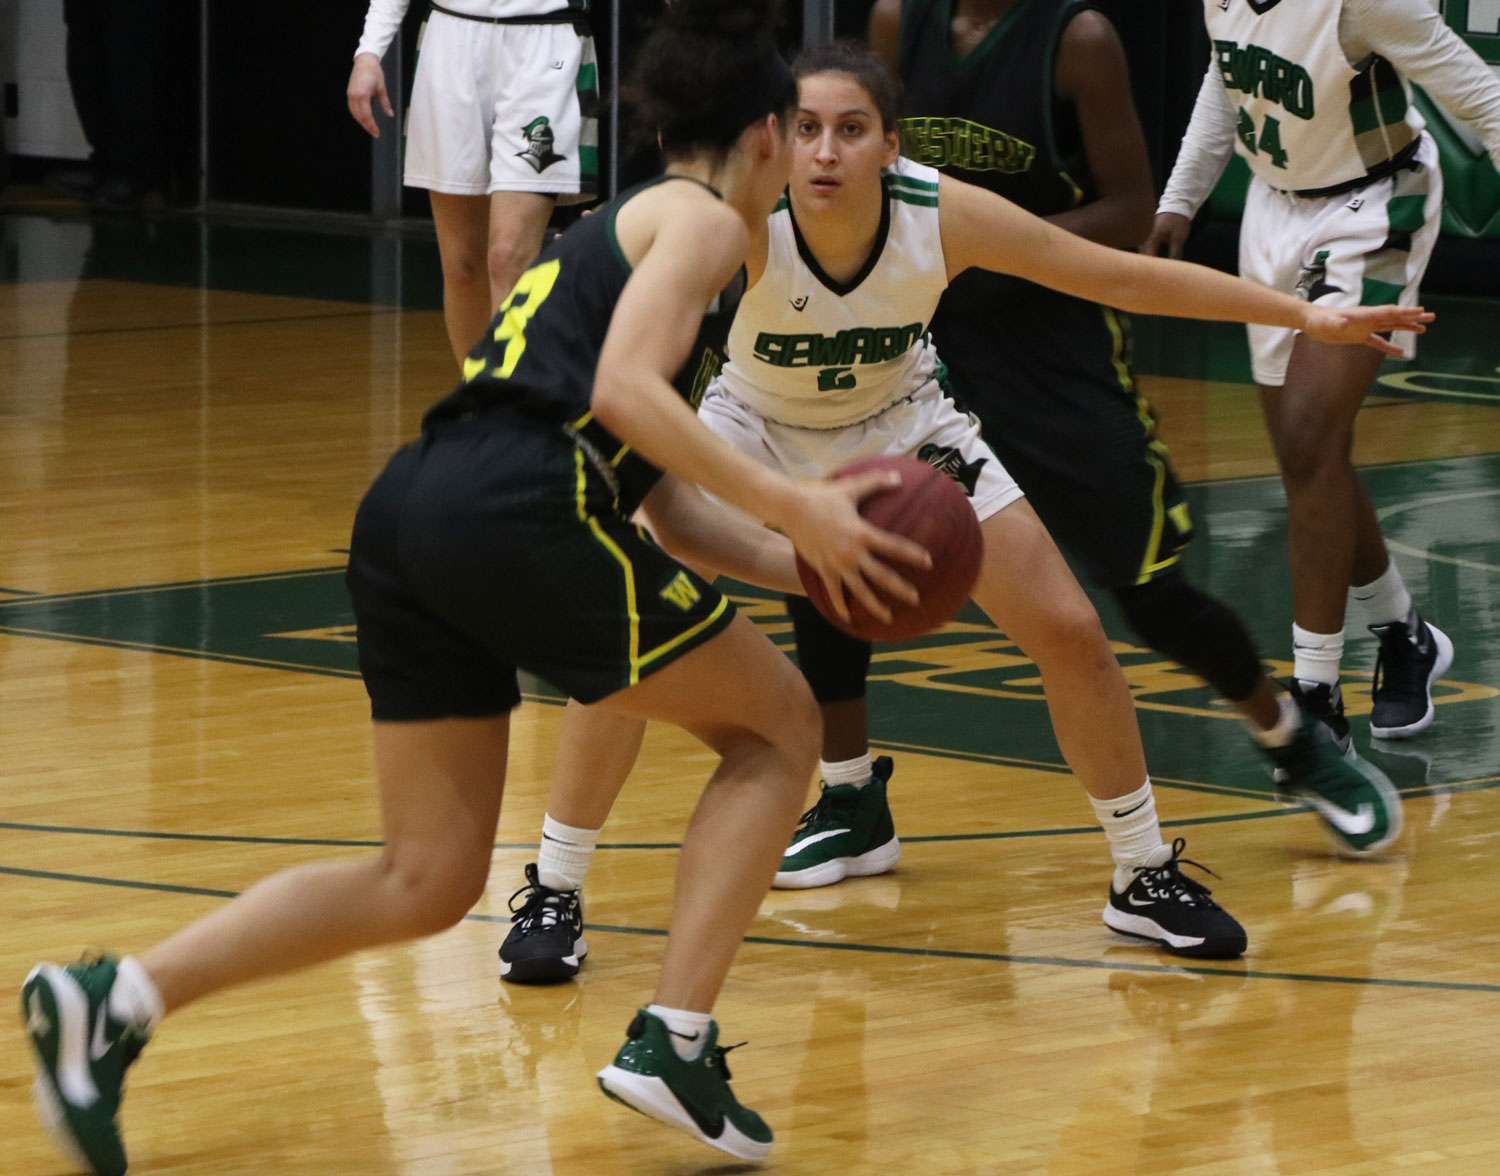 Freshman Wiktoria Kazimierowicz, plays a great defense, not letting any of the Lady Pioneers inside the lane for a layup.